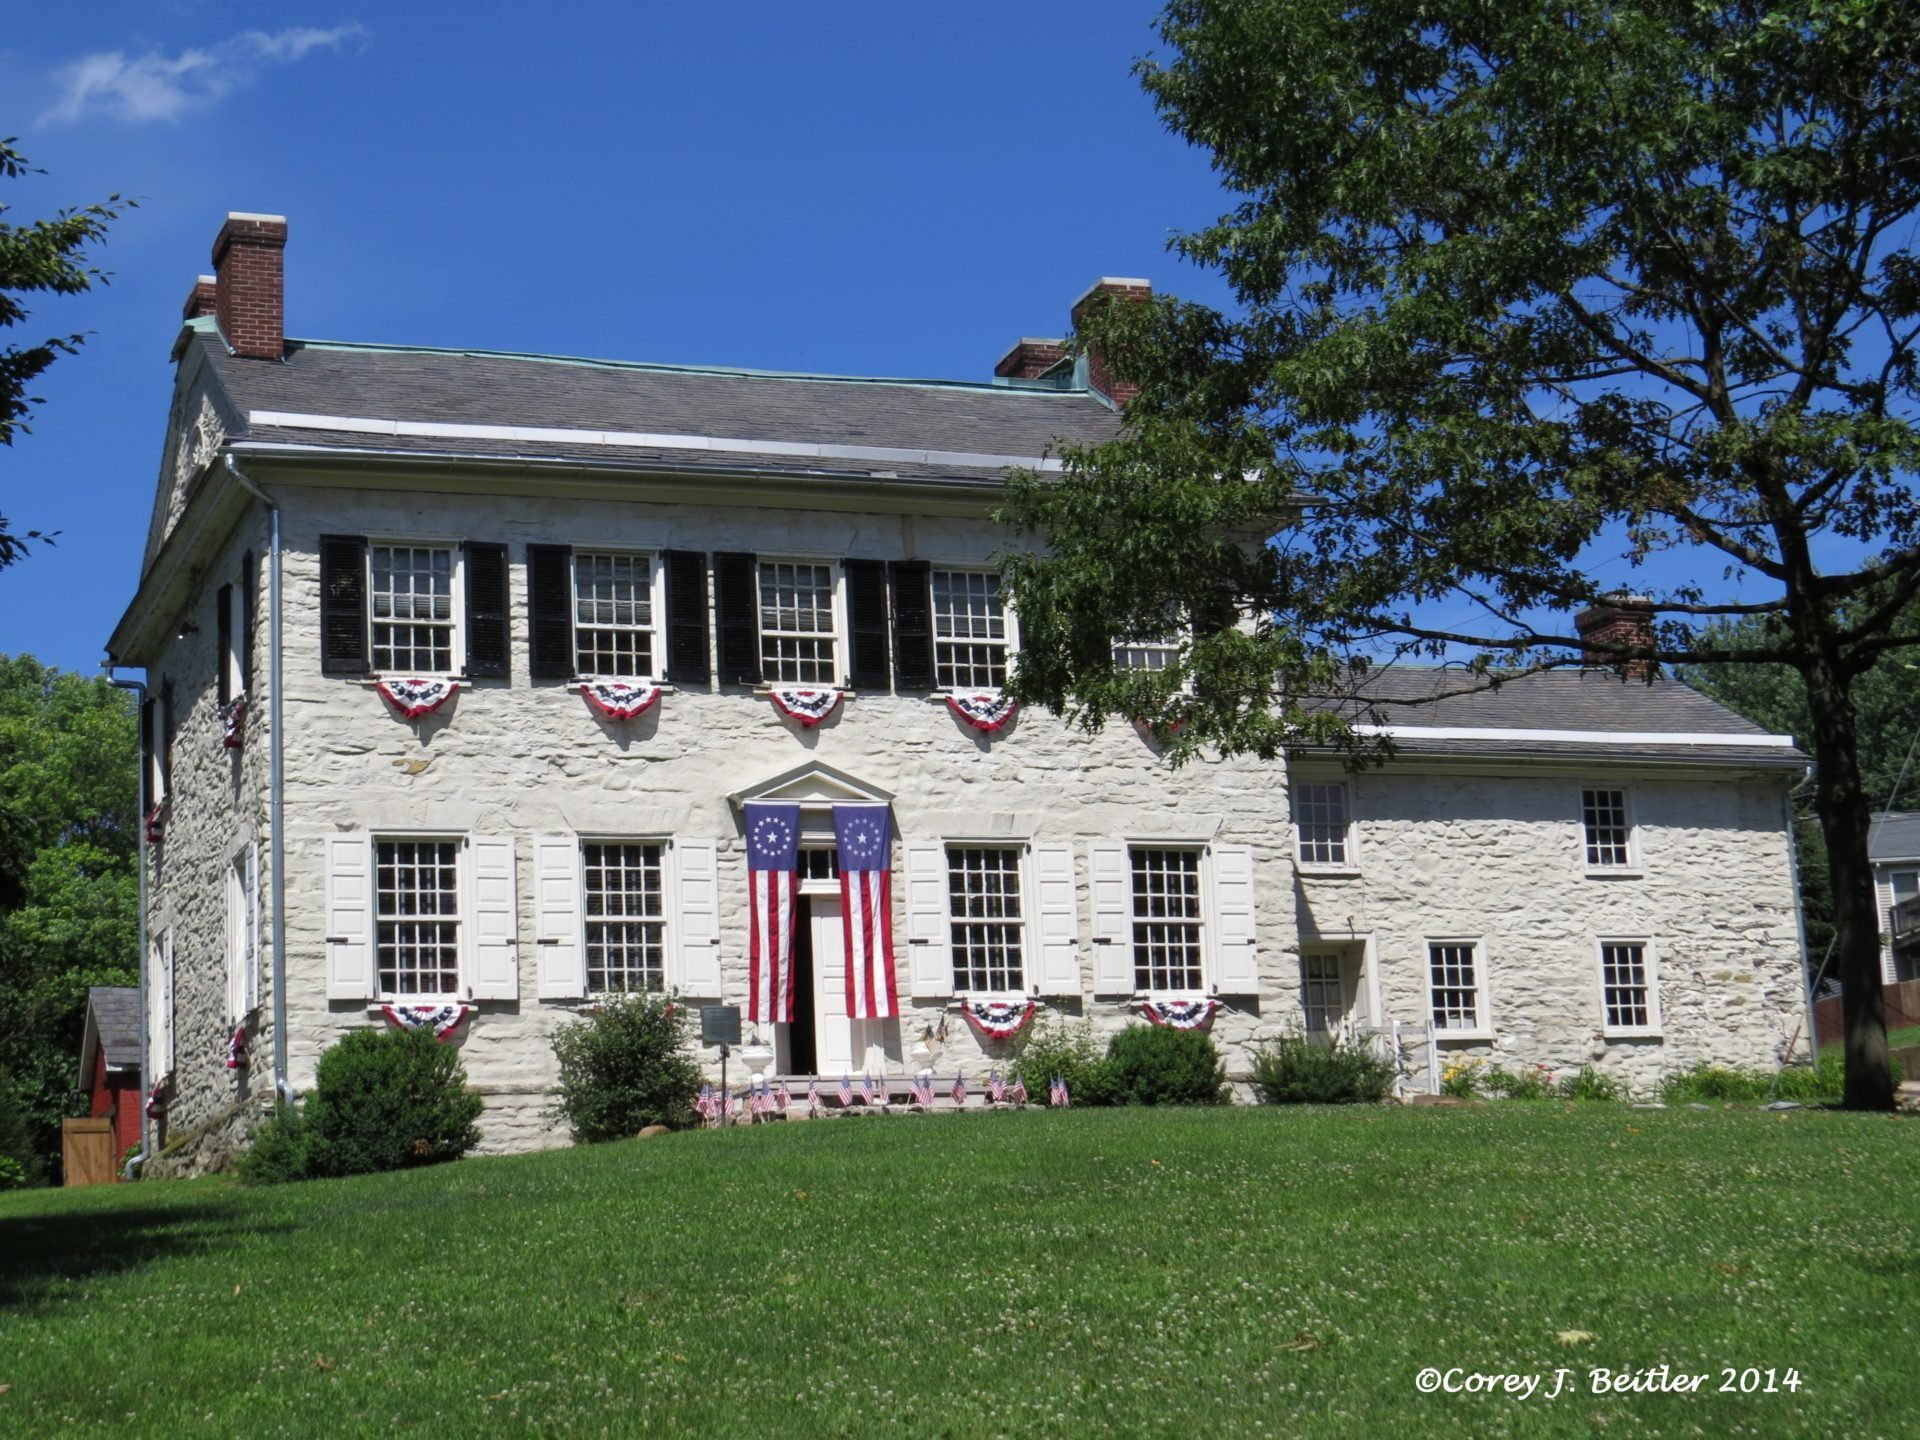 The George Taylor House has sat at this location since 1768.  The kitchen on the right was added around 1800.